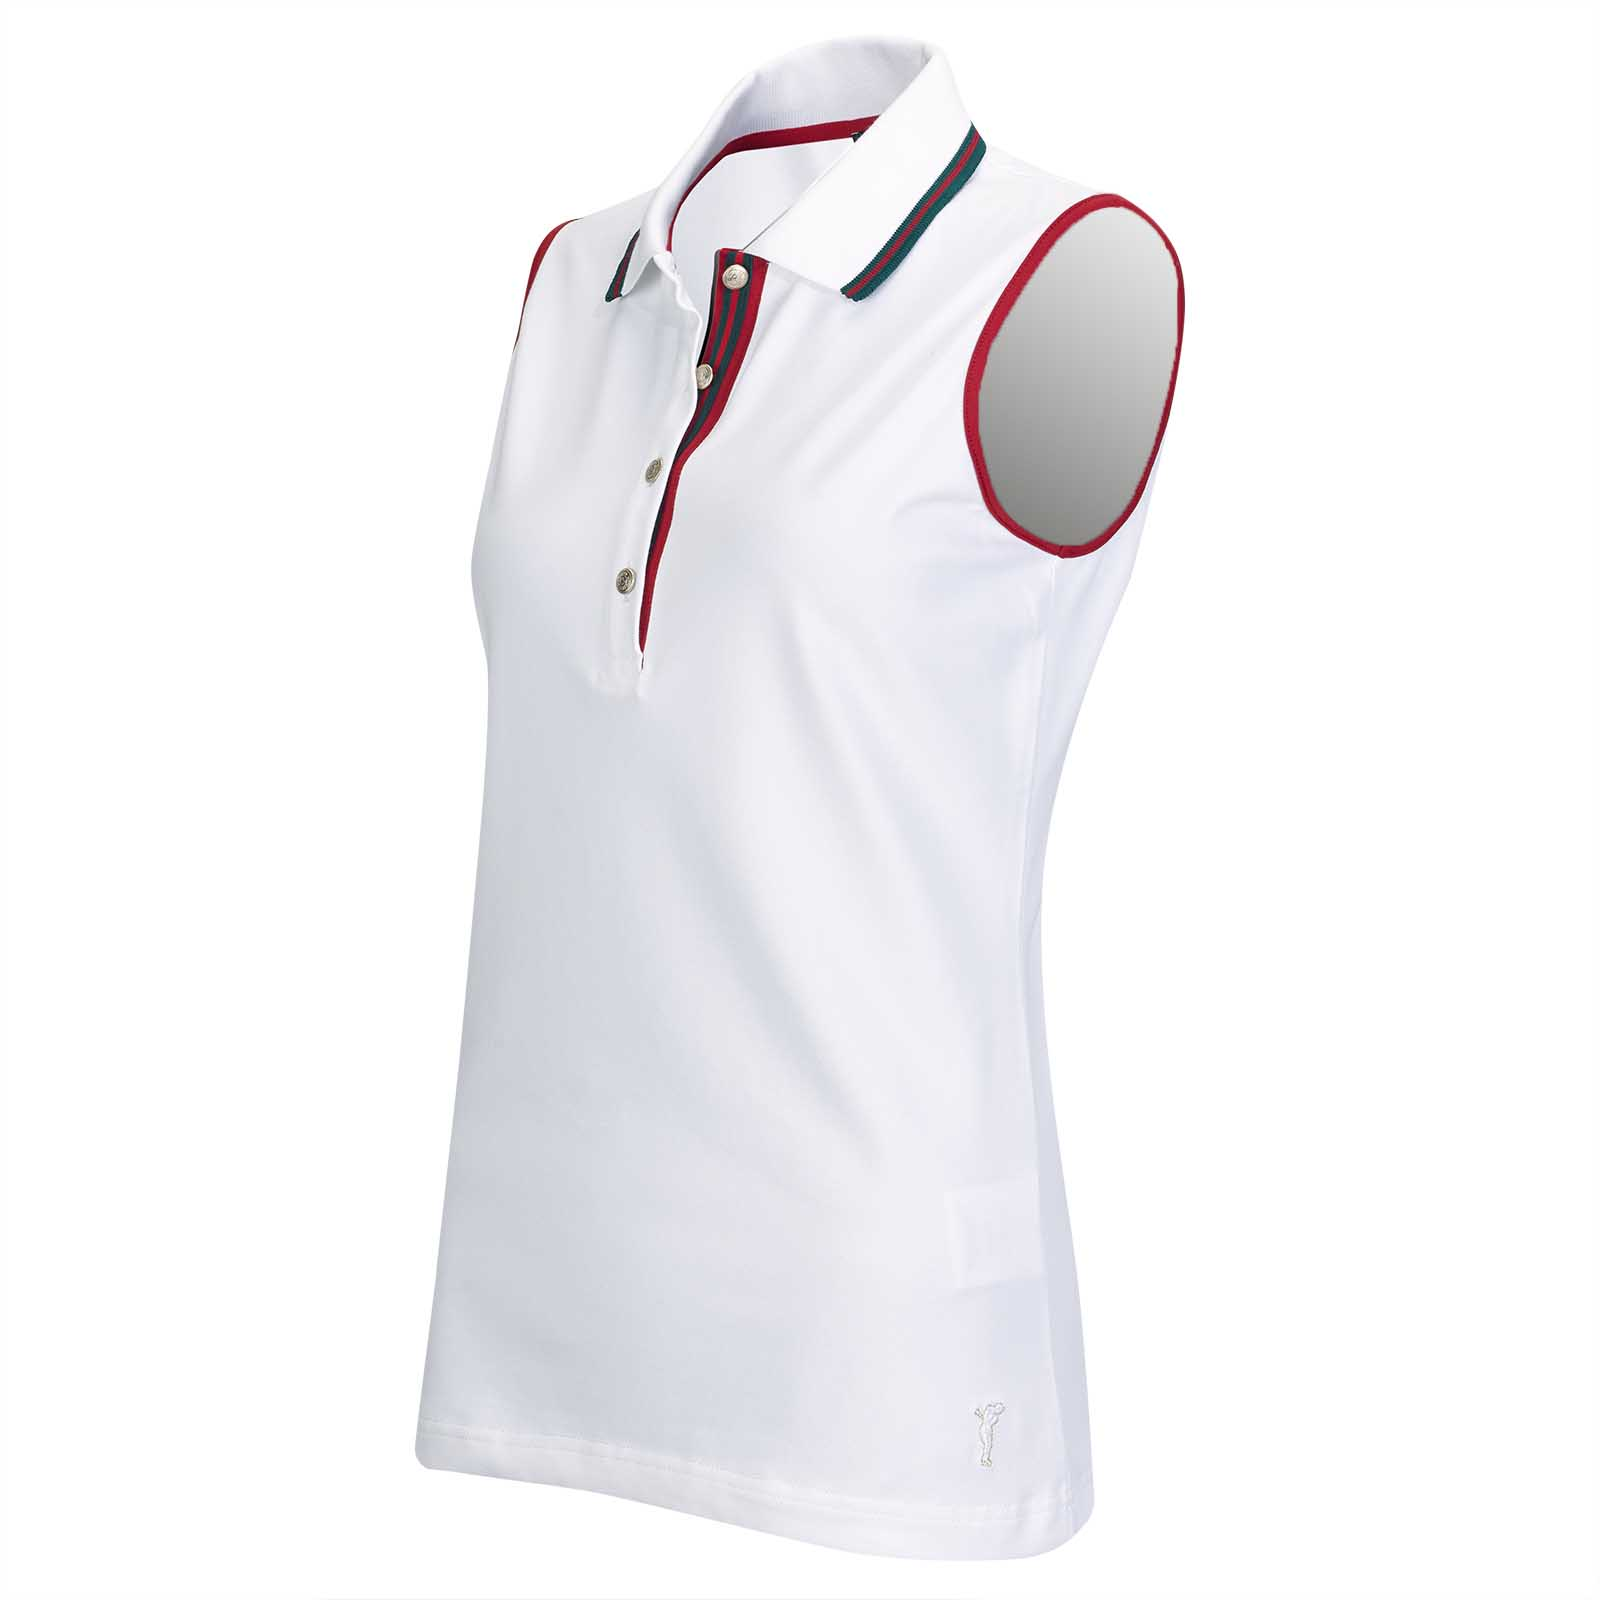 Ladies' sleeveless functional piqué of cotton blend with Sun Protection